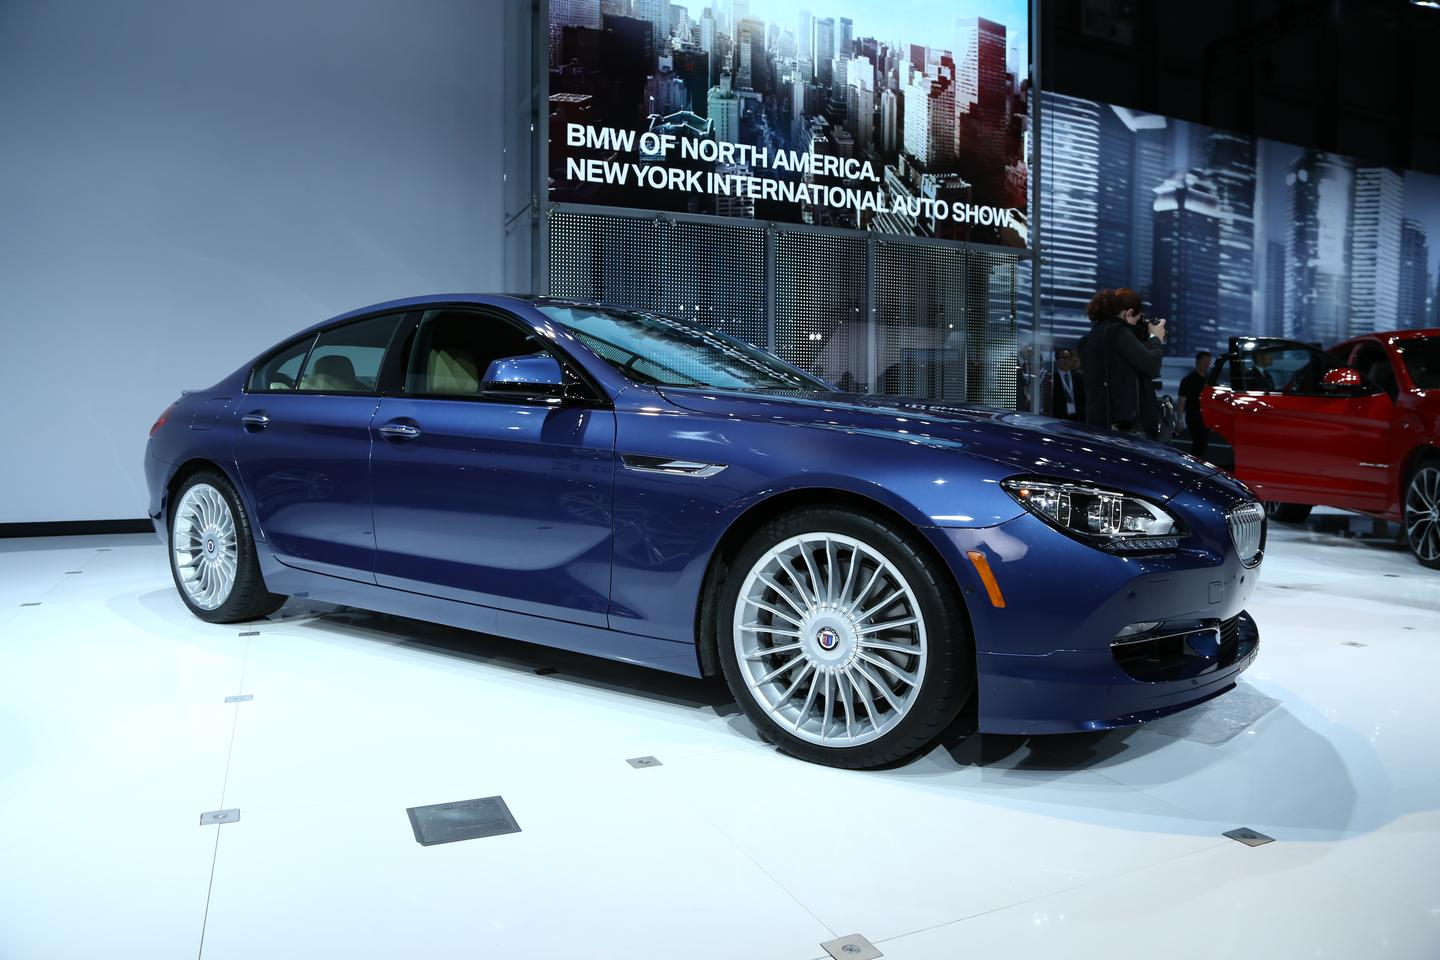 The US$118,000 BMW Alpina B6 Gran Coupe features a 540 hp 4.4 liter twin-turbo V8, that's good for 198 mph (318 km/h) via an 8-speed automatic gearbox and all-wheel drive powertrain (Photo: Angus MacKenzie/Gizmag.com)